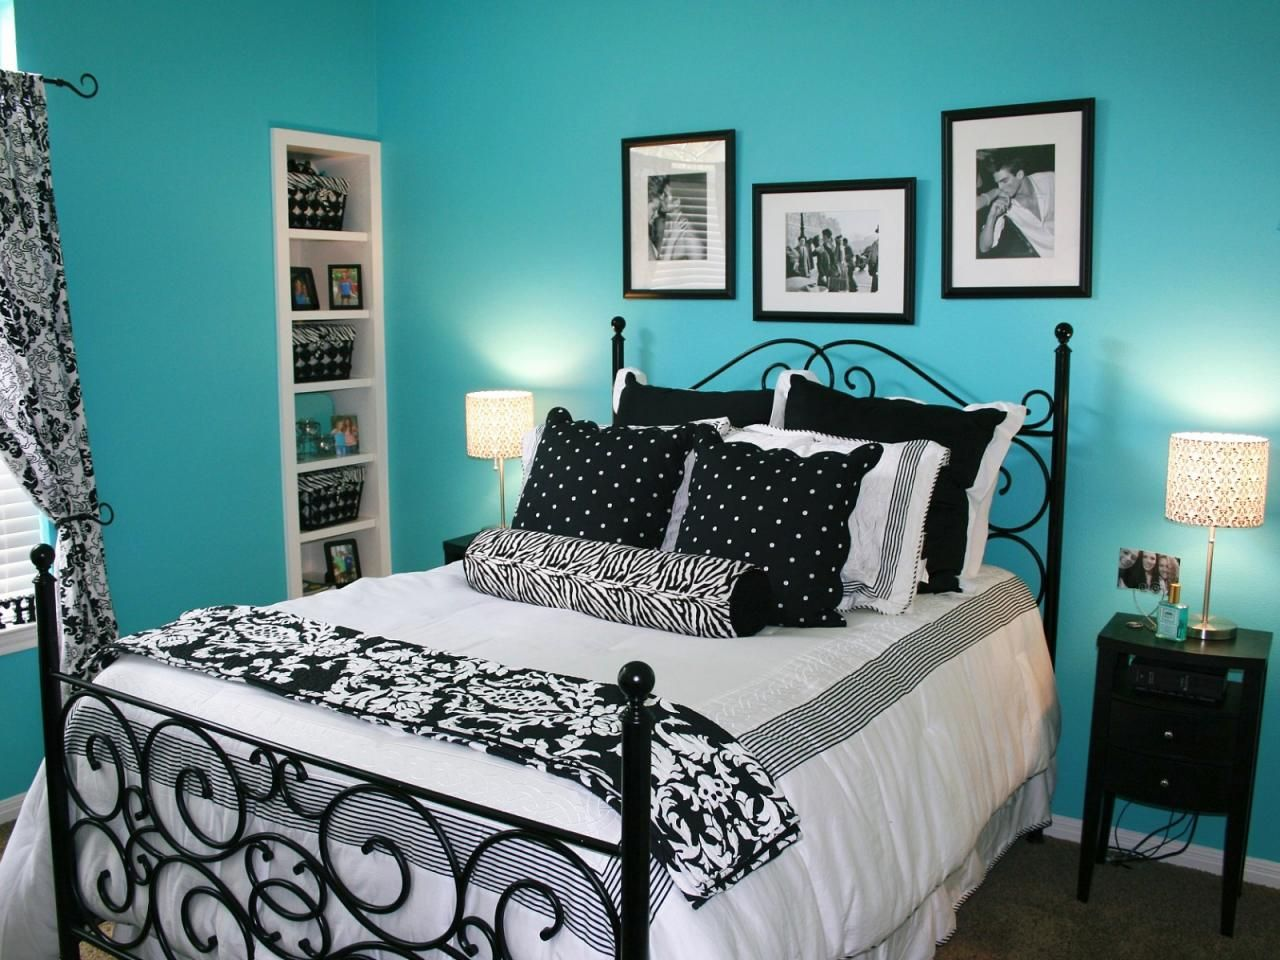 Light blue and black bedding - Find This Pin And More On Black And White